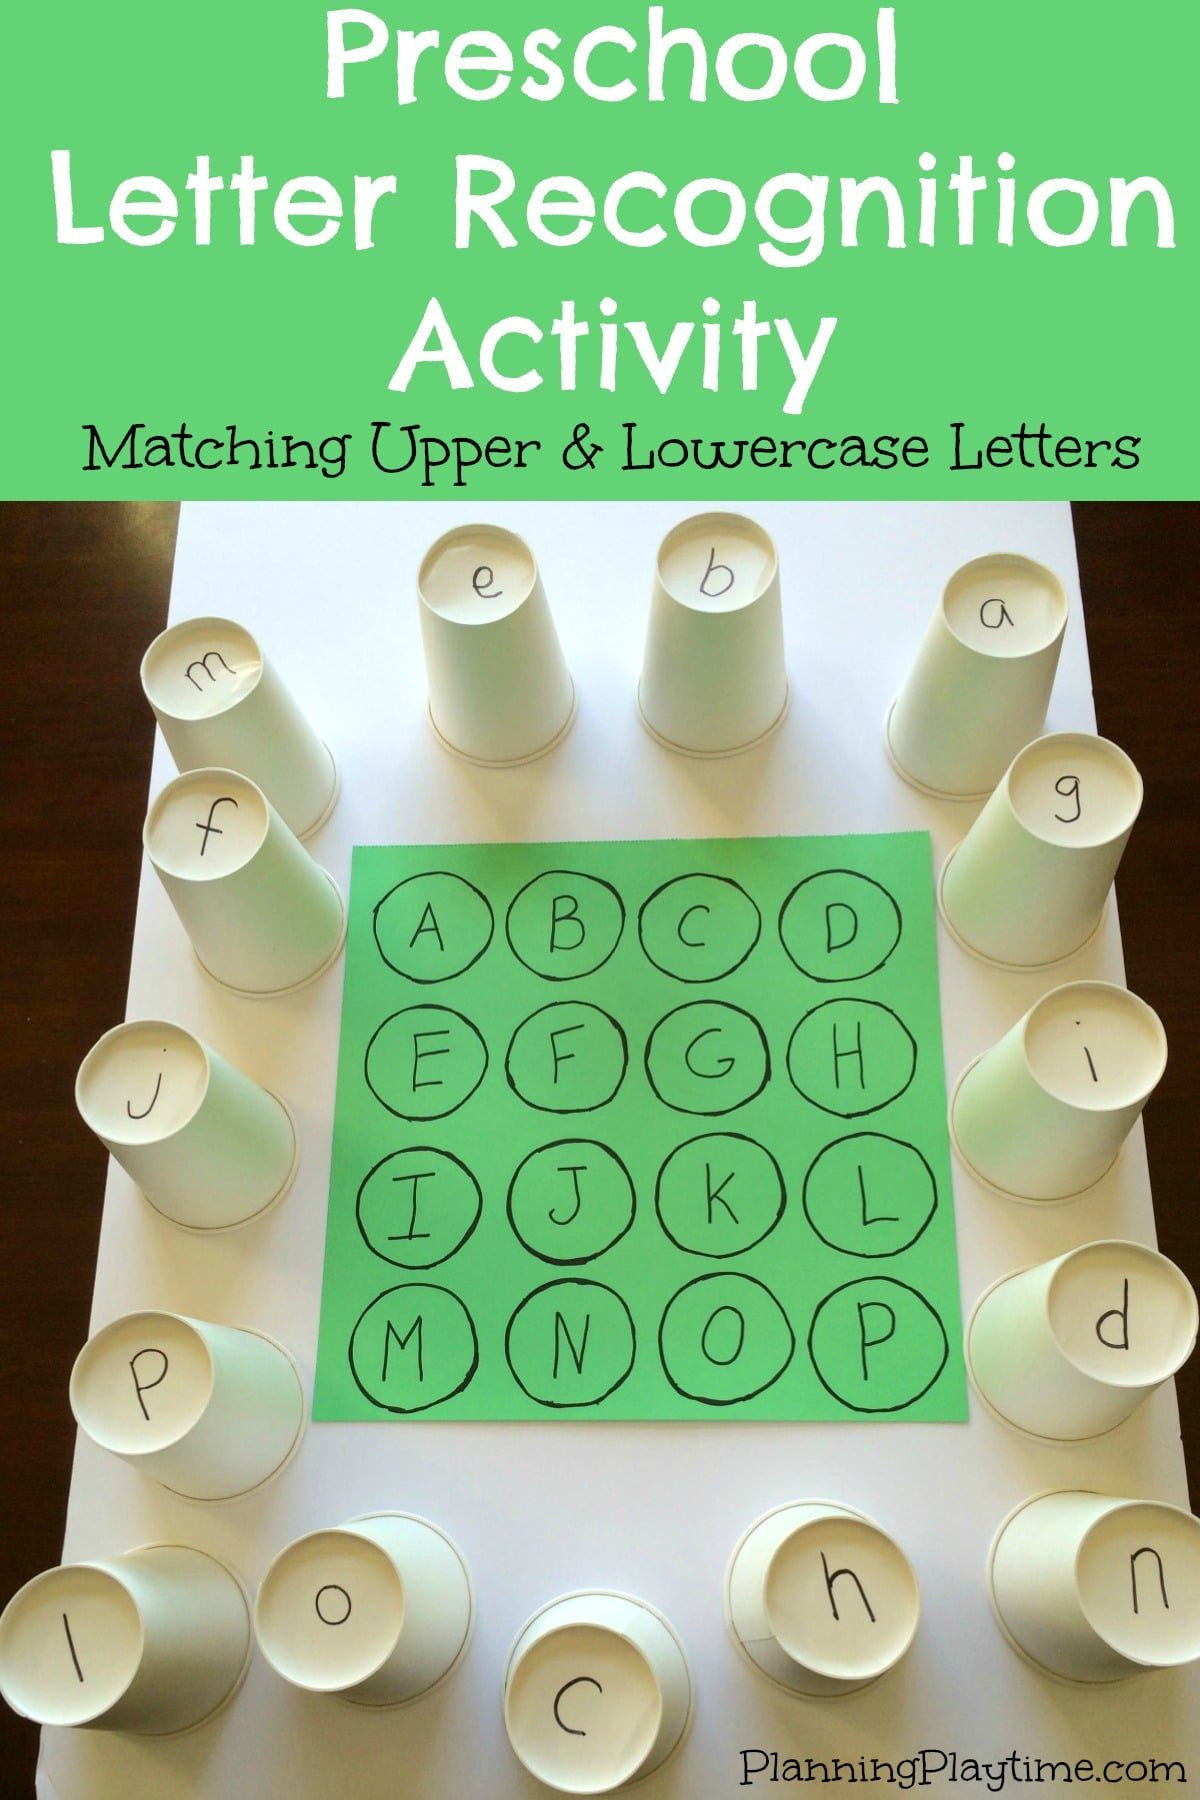 letter recognition activities for toddlers preschool letter recognition activities planning playtime 21945